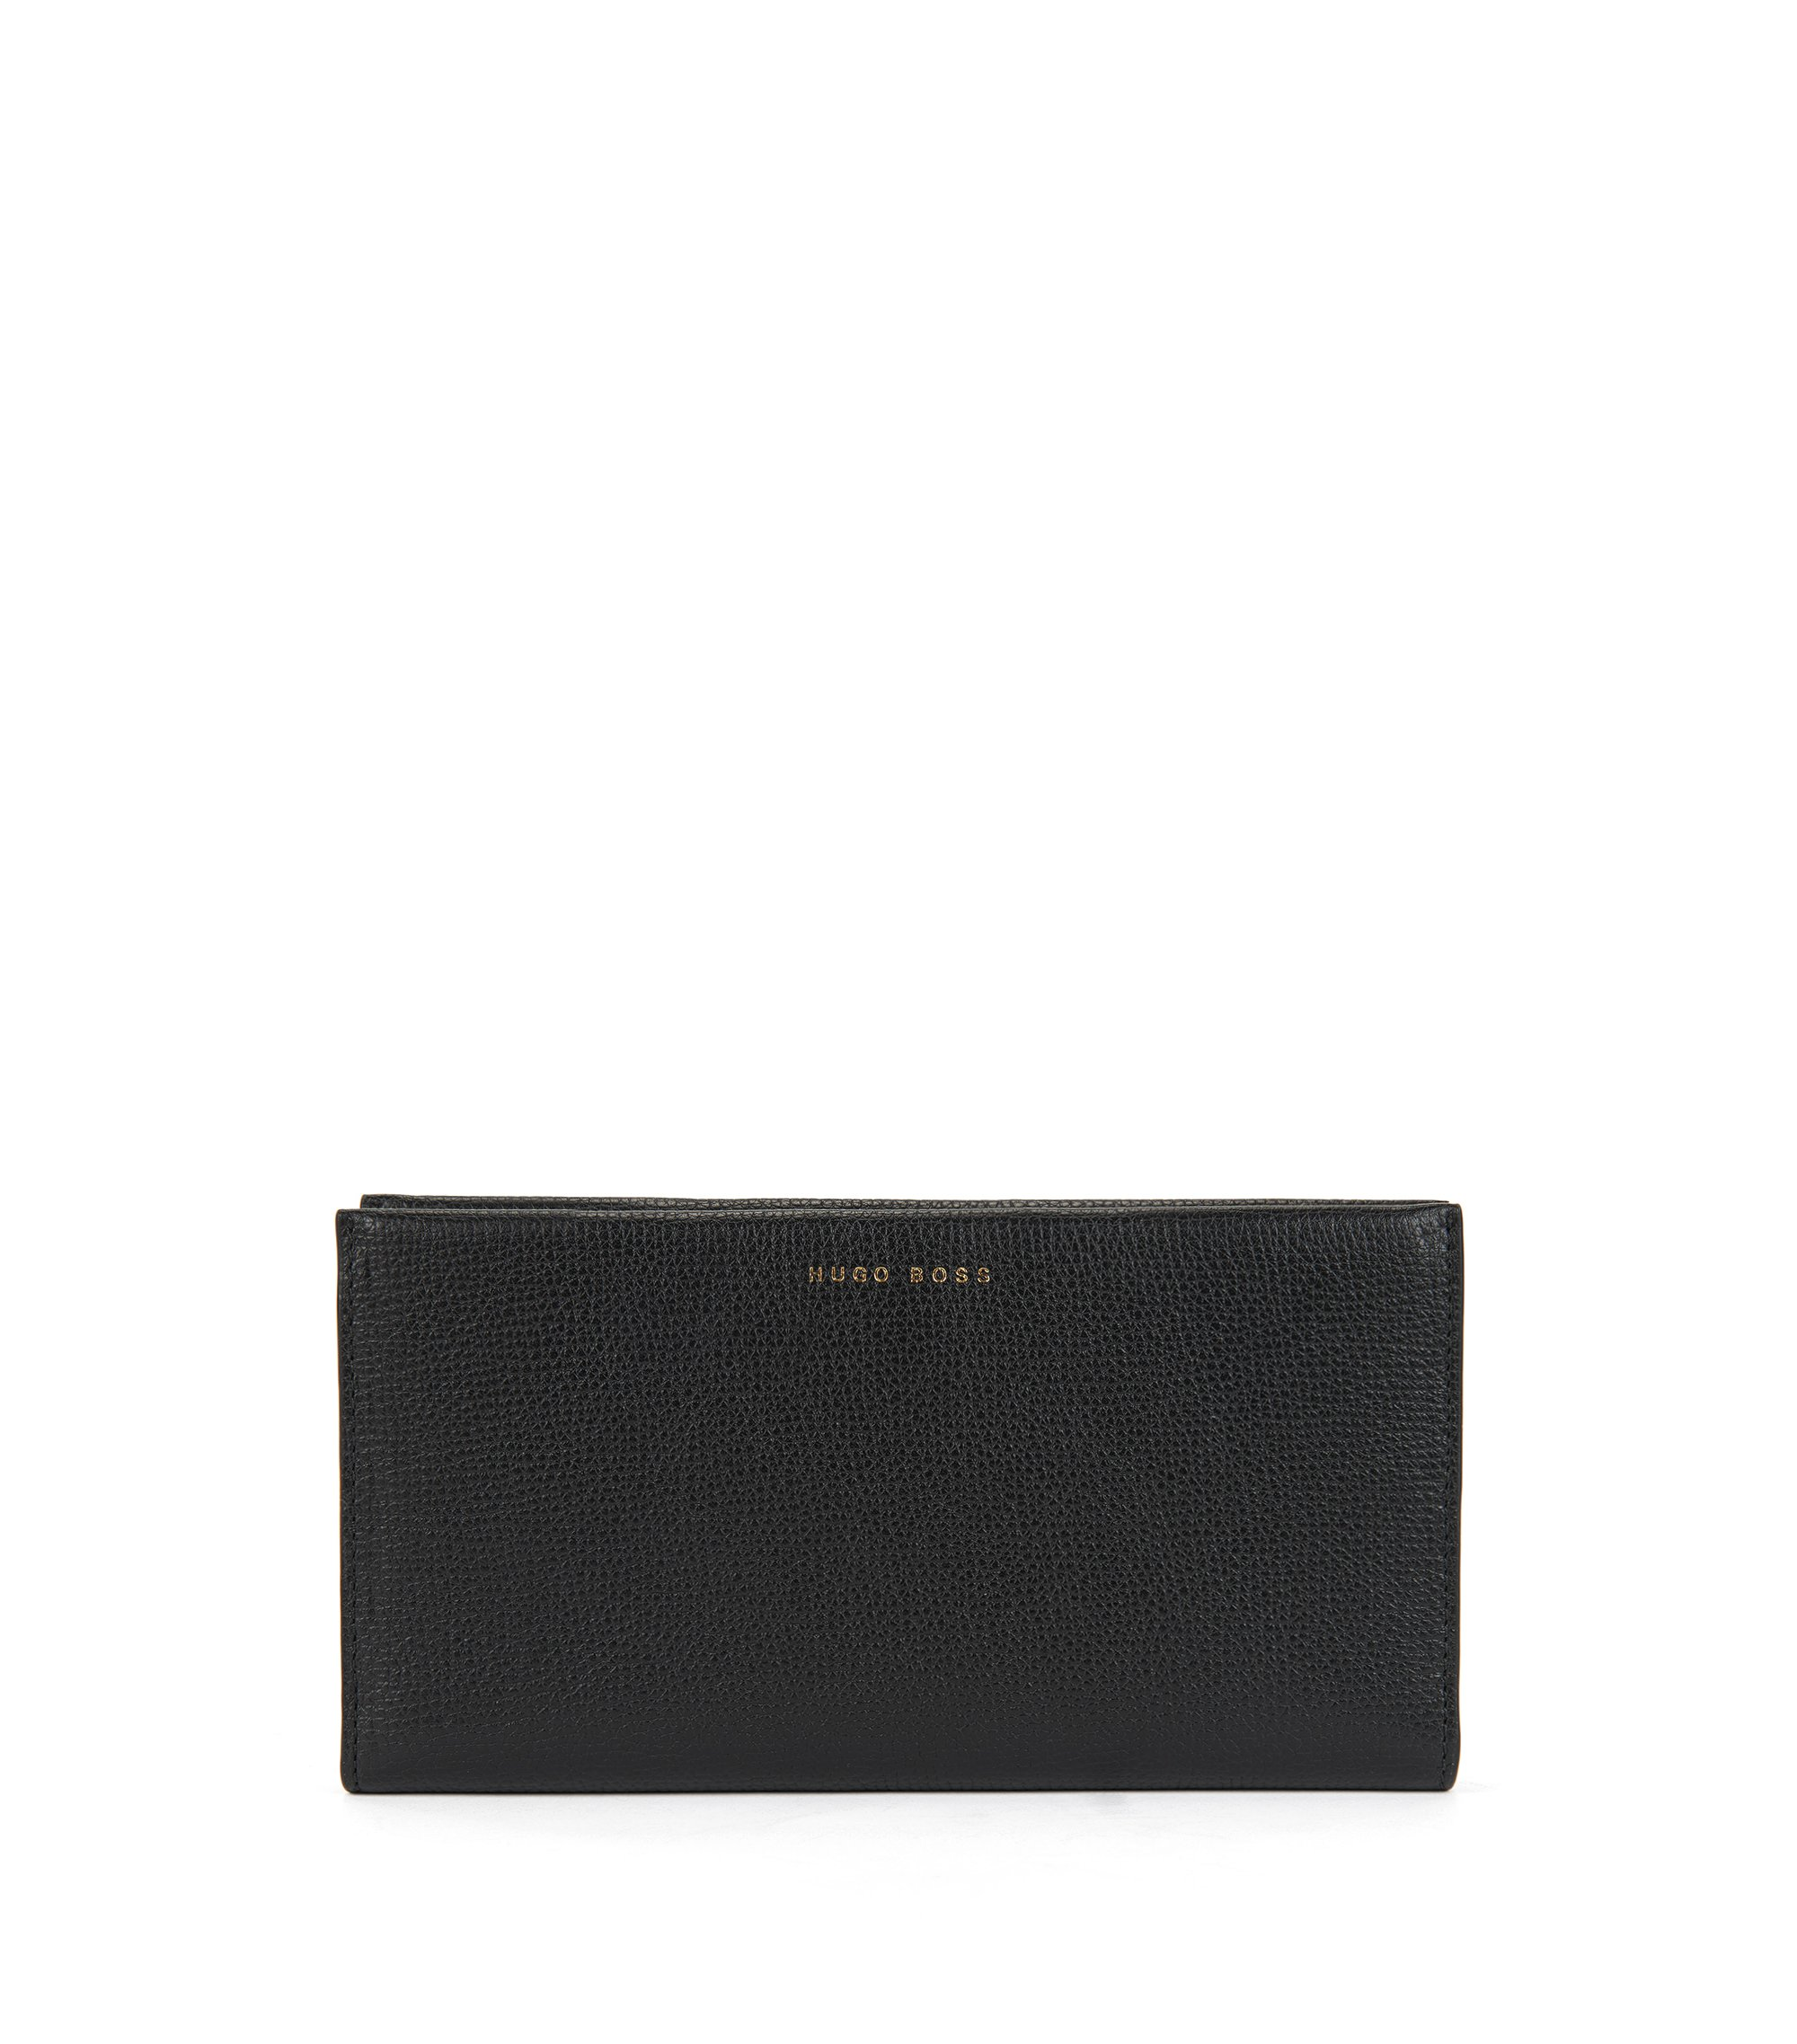 Ziparound wallet in grained calfskin leather, Black